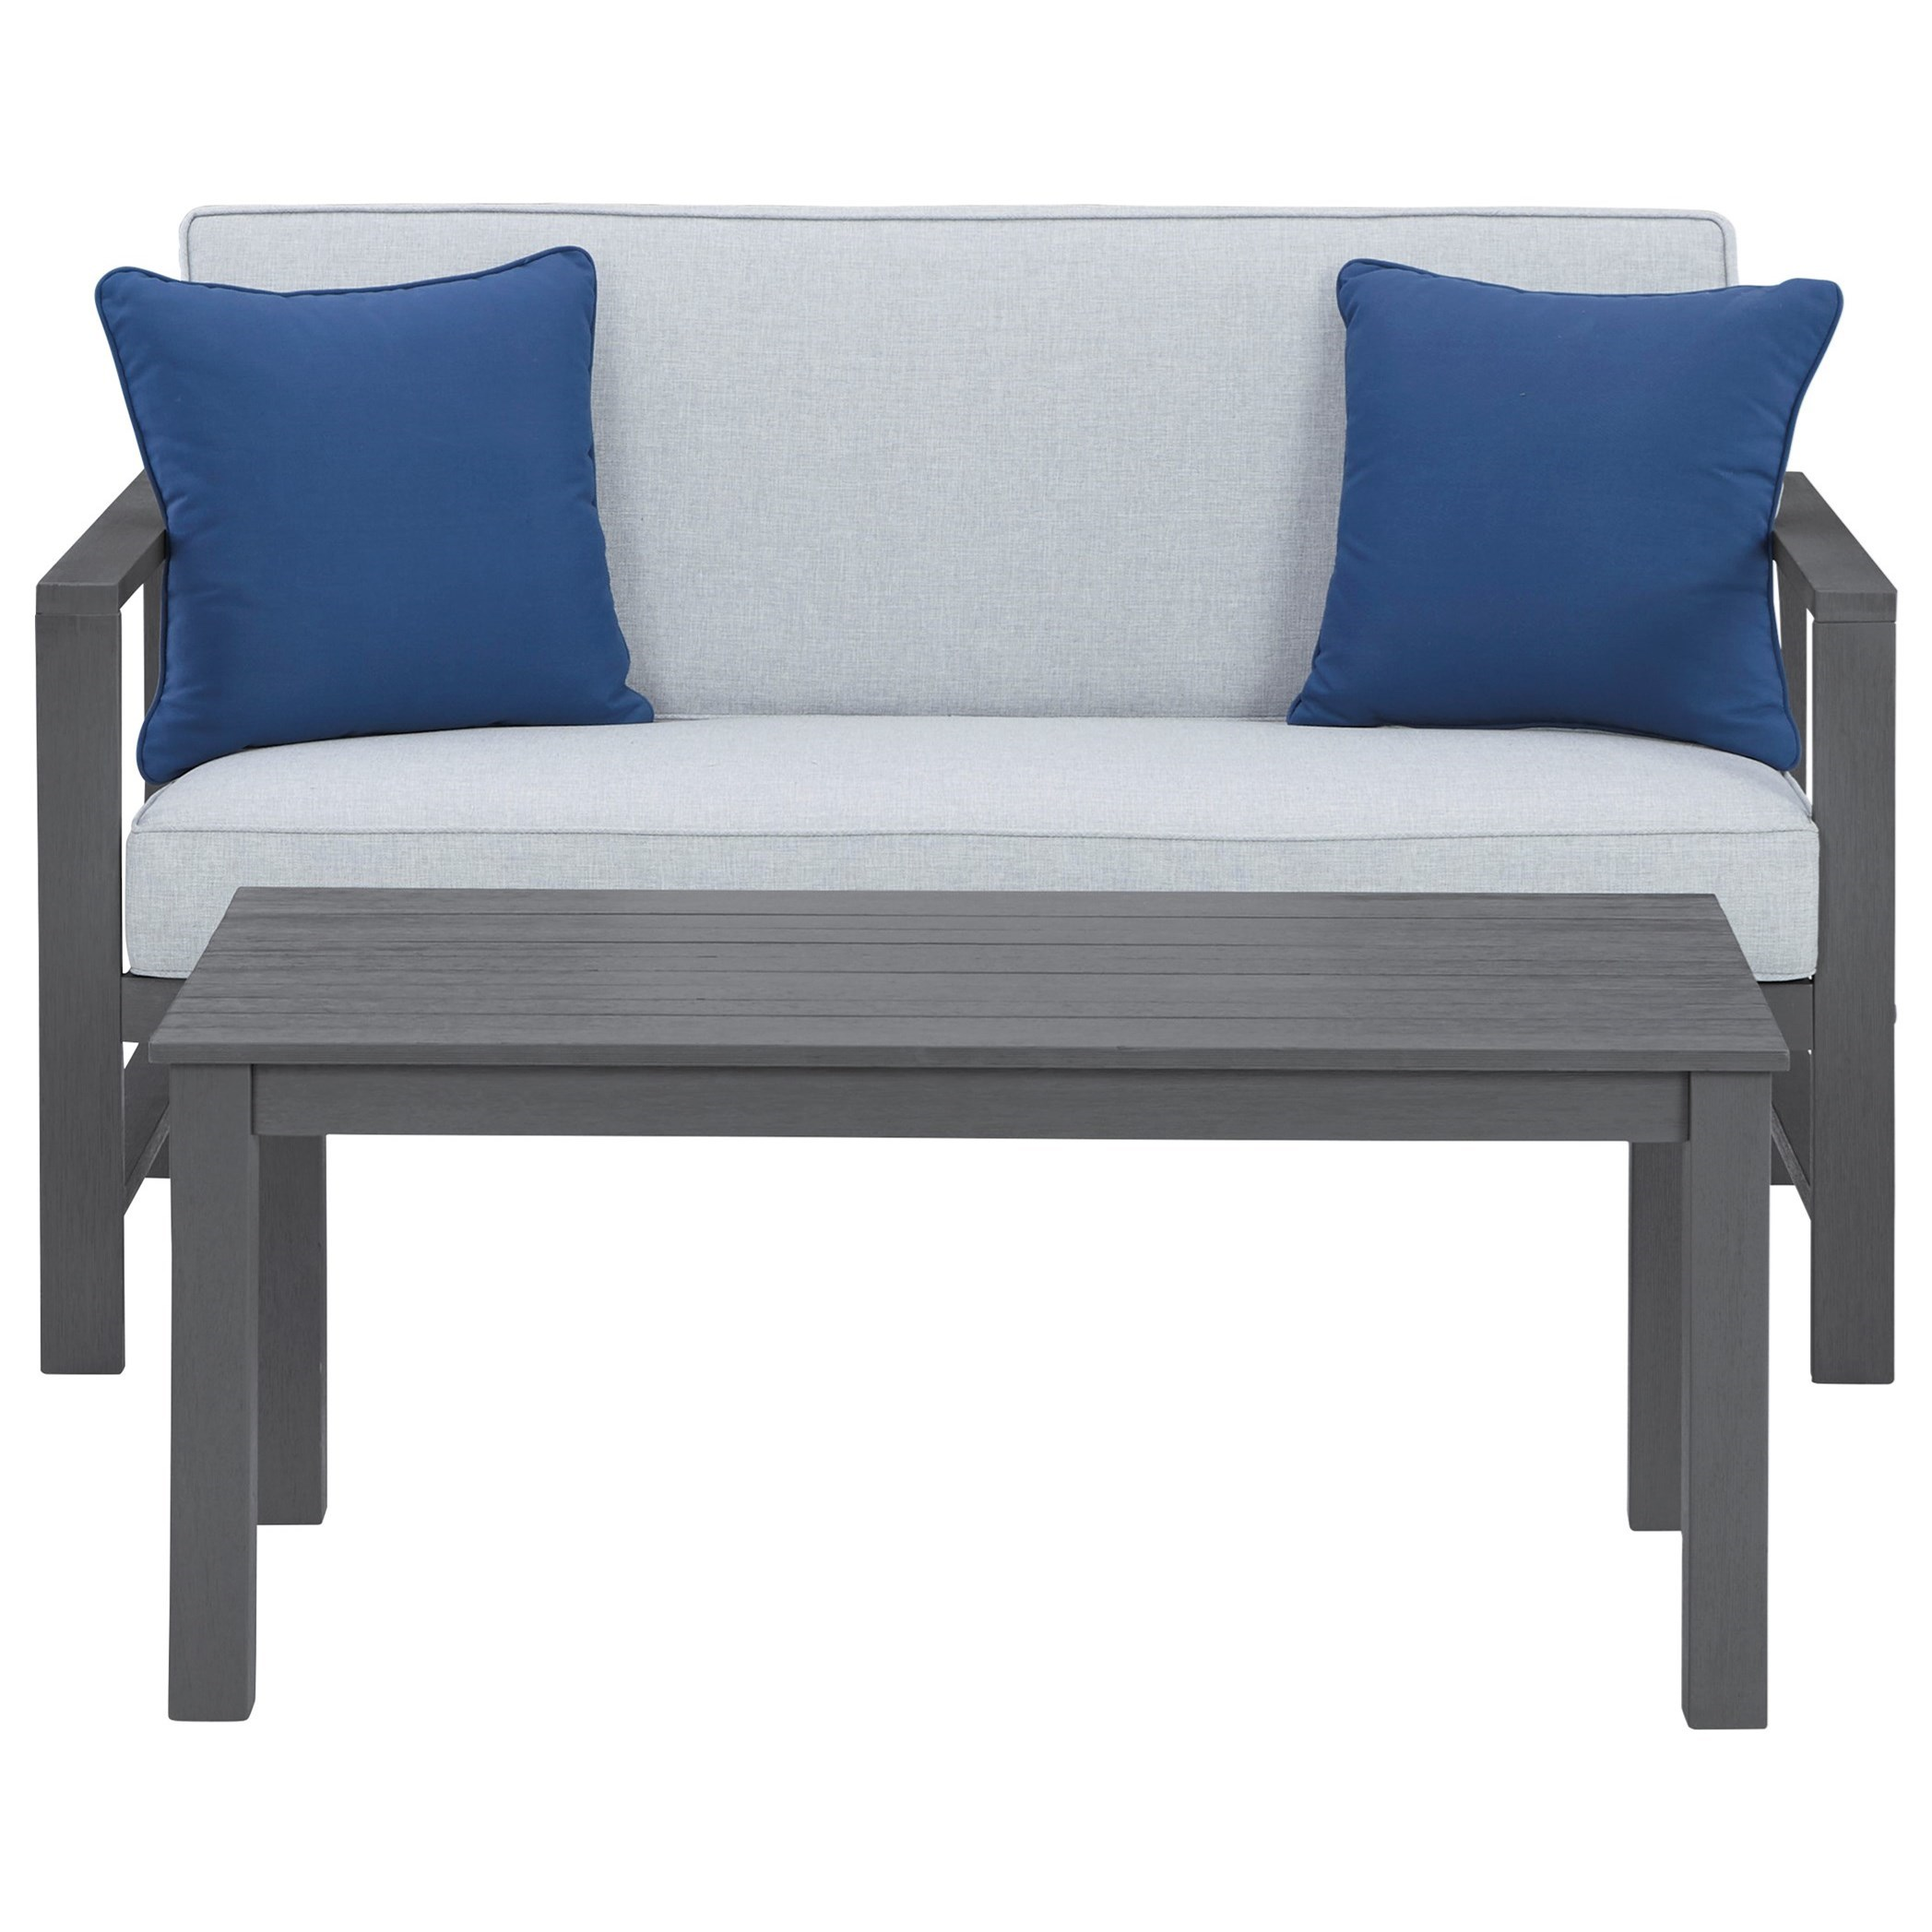 Fynnegan Loveseat w/ Table by Signature Design by Ashley at Northeast Factory Direct